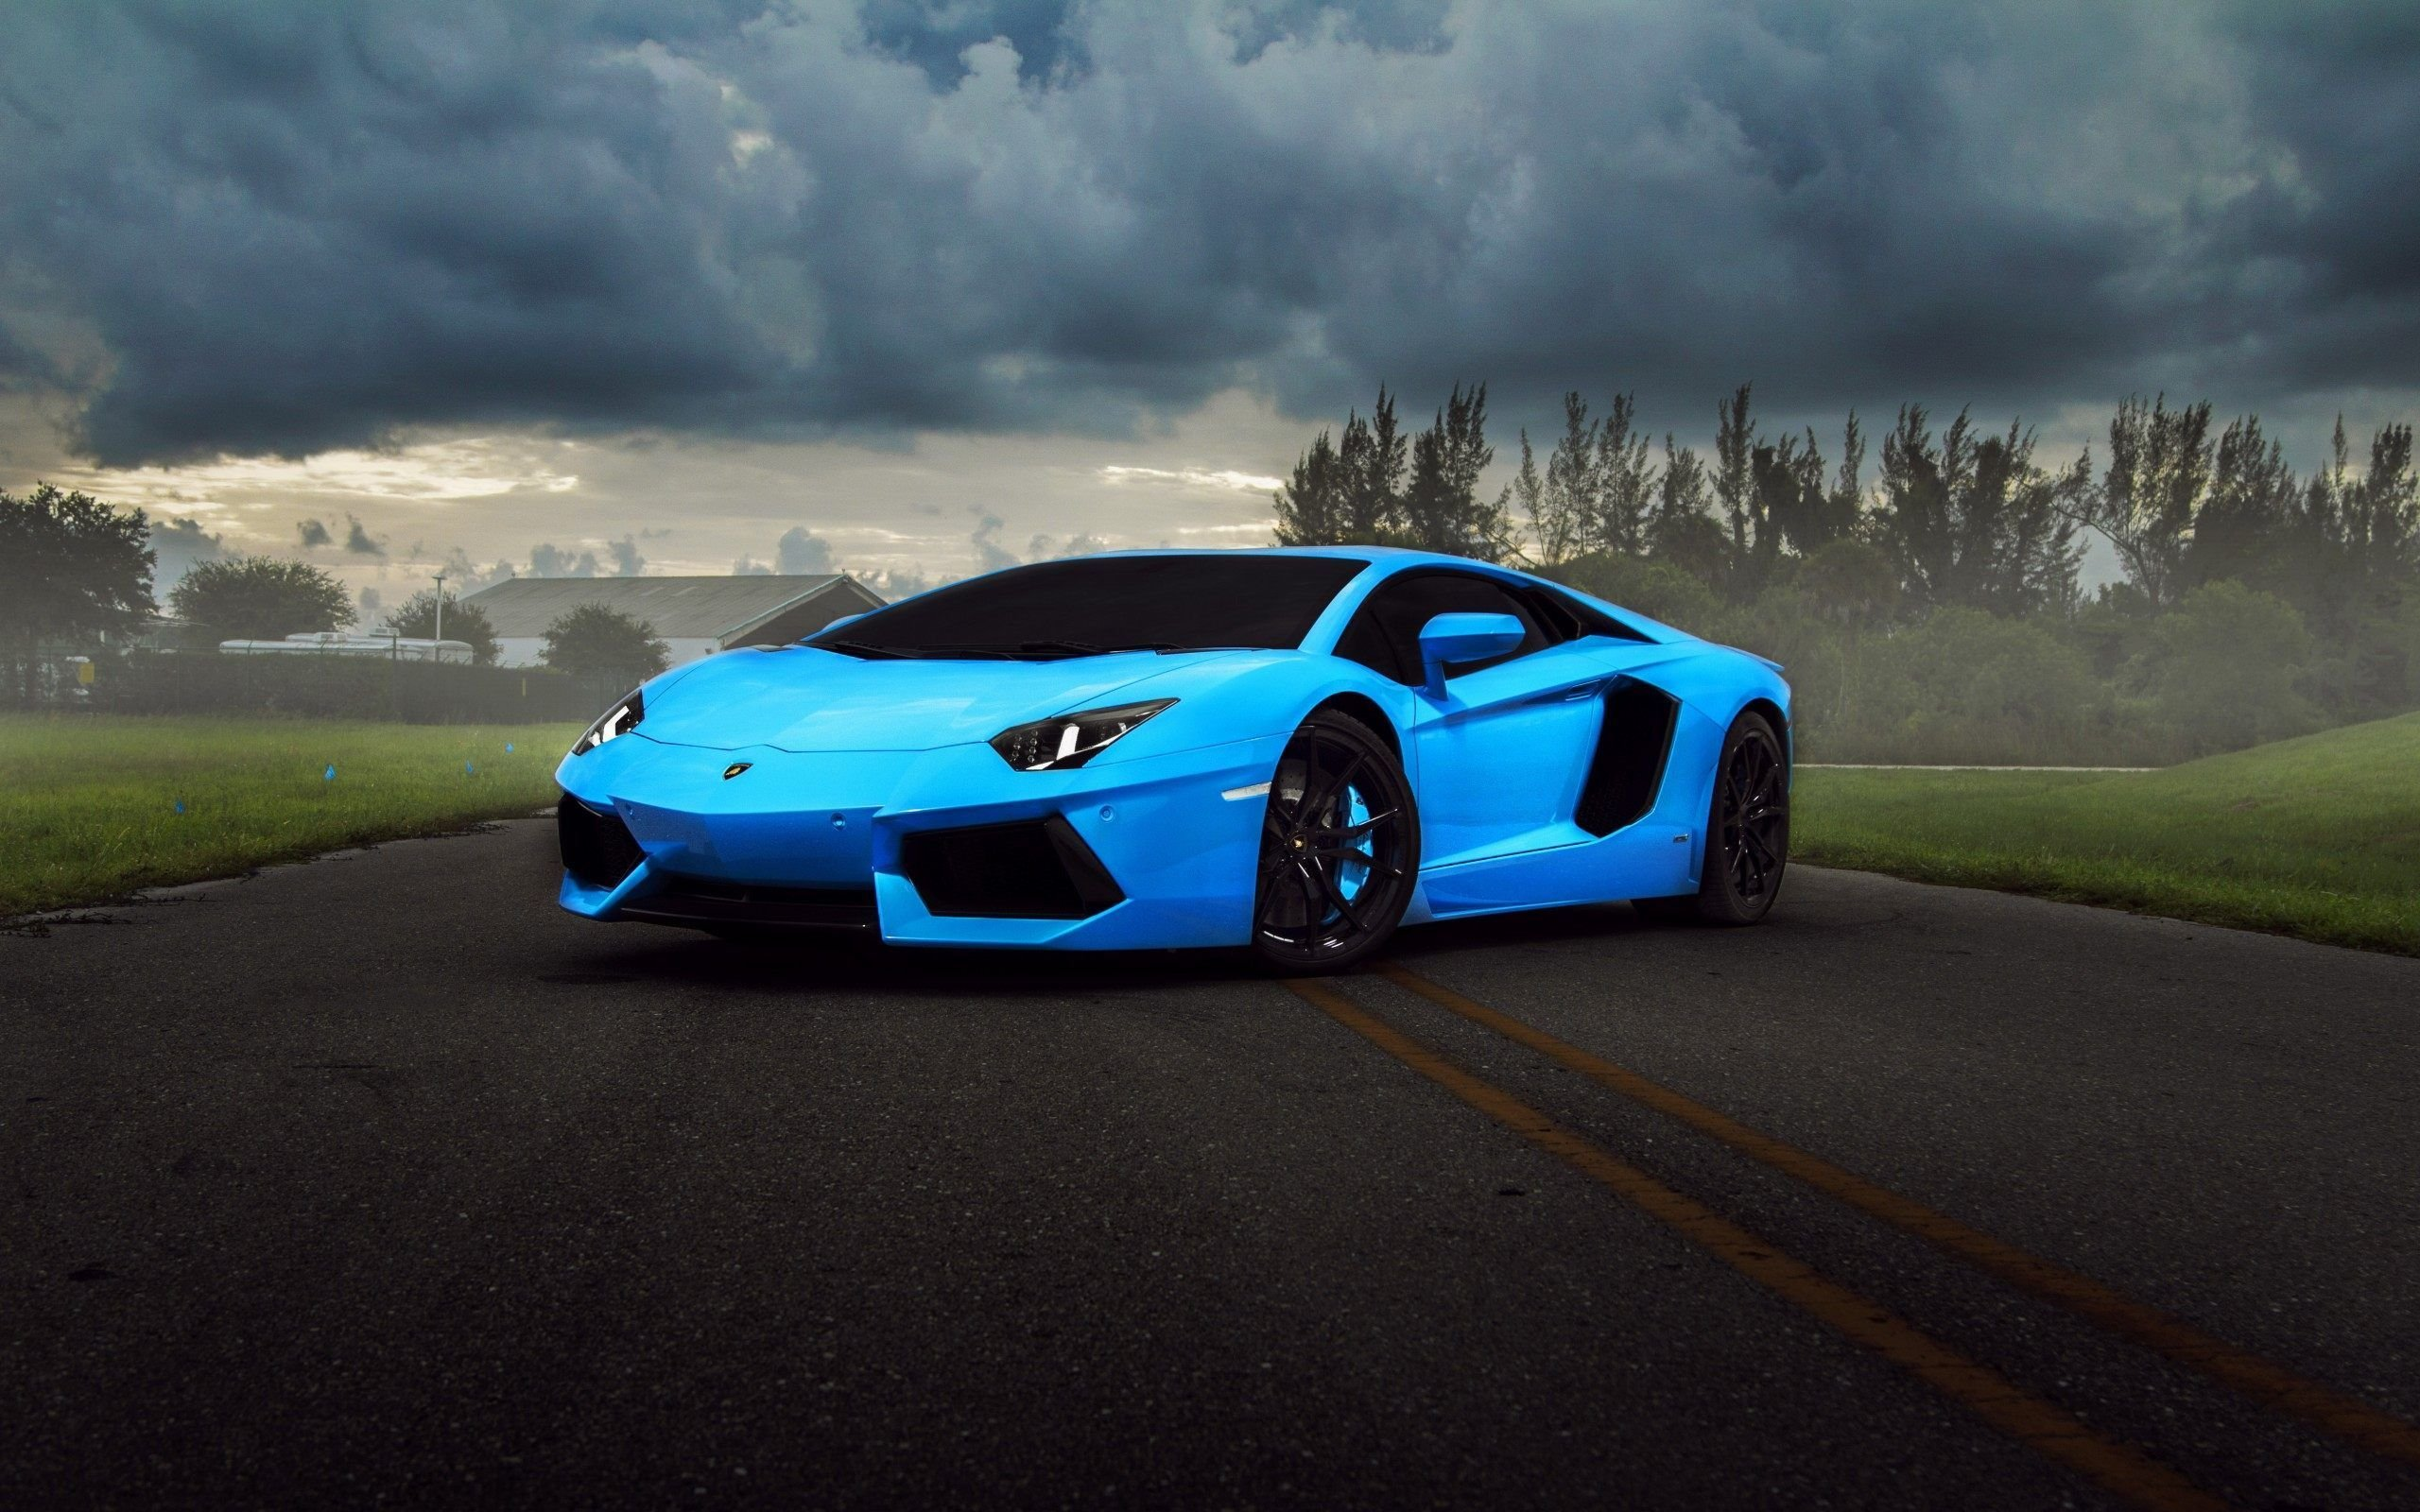 New Blue Lamborghini Wallpapers Free Vehicles Wallpapers On This Month